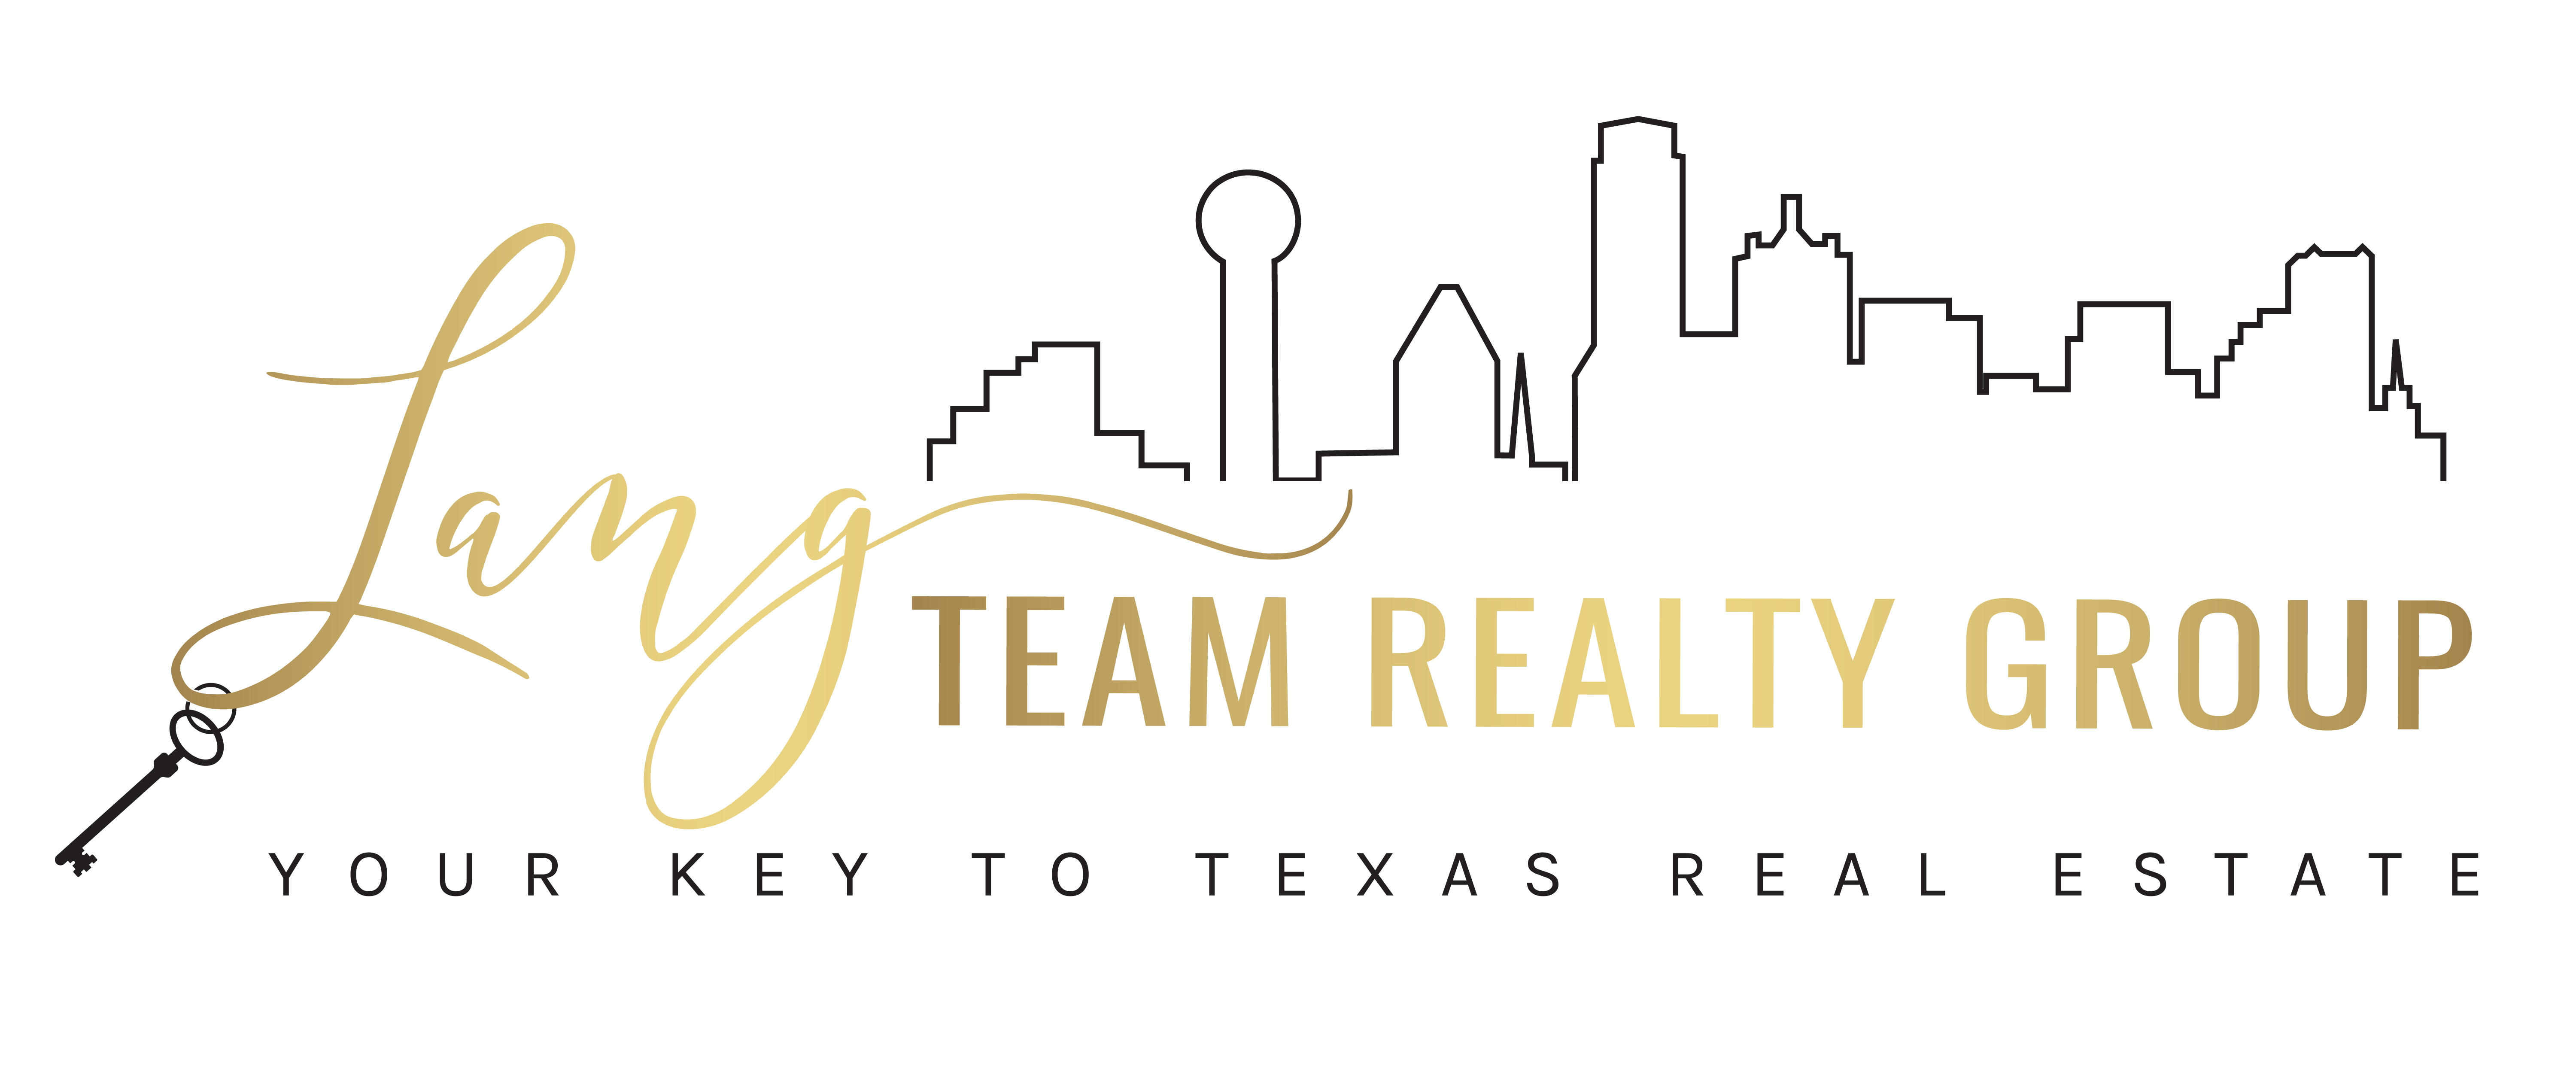 The Lang Team Realty Group